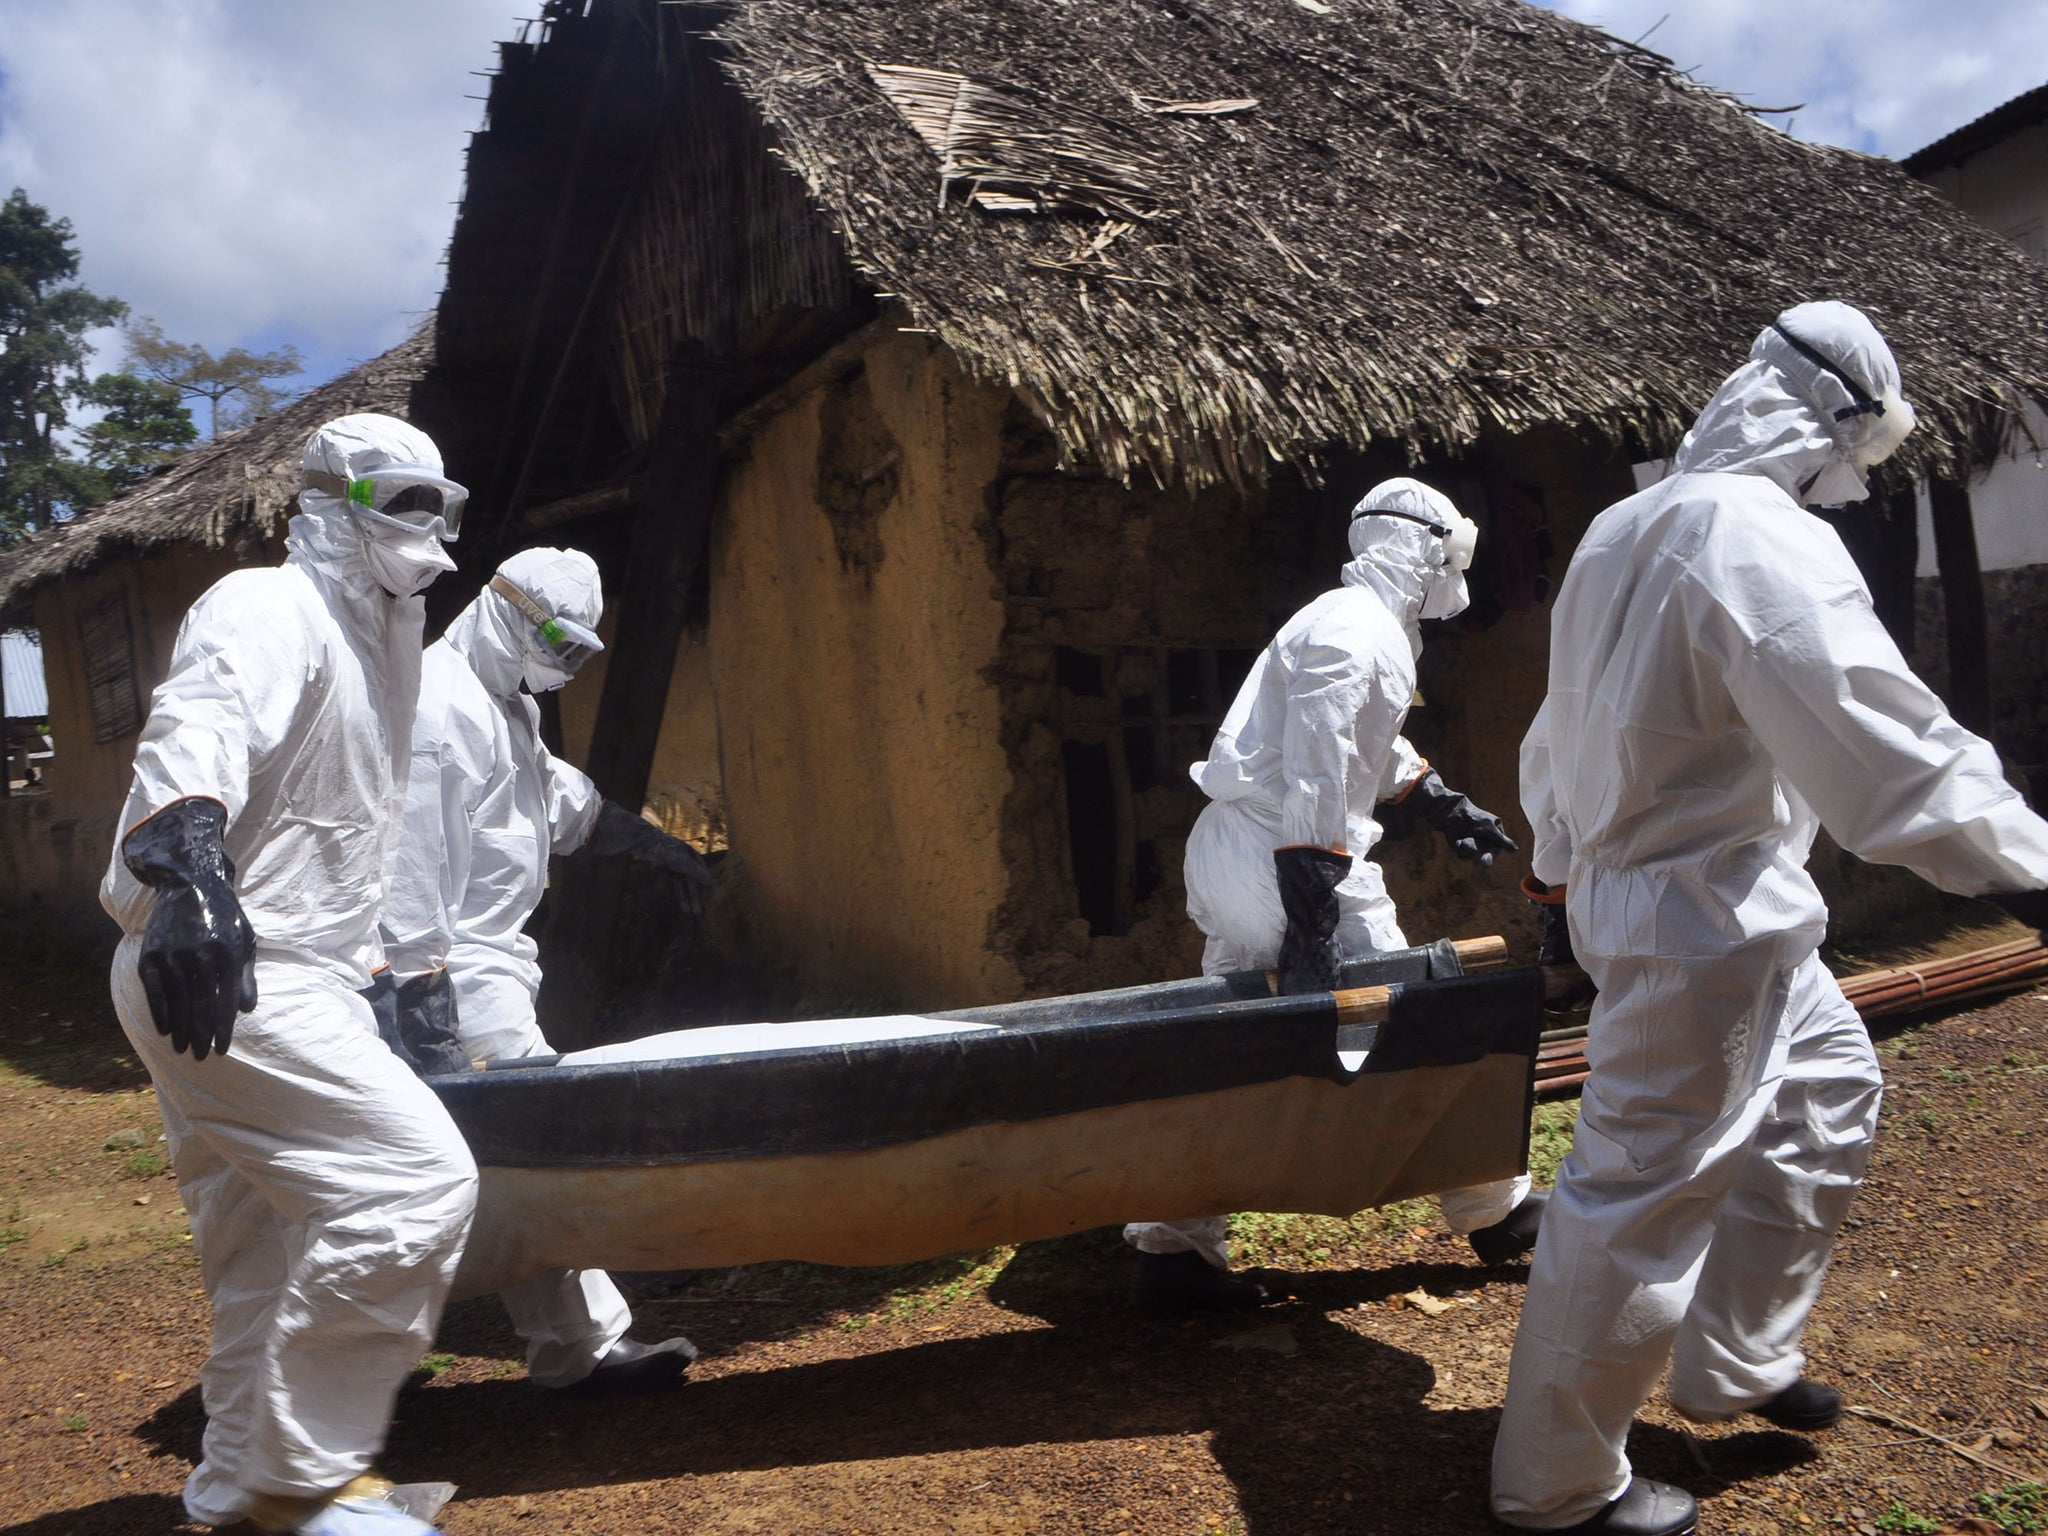 Ebola crisis: Cases pass 10,000 as almost 5,000 killed by disease in eight countries